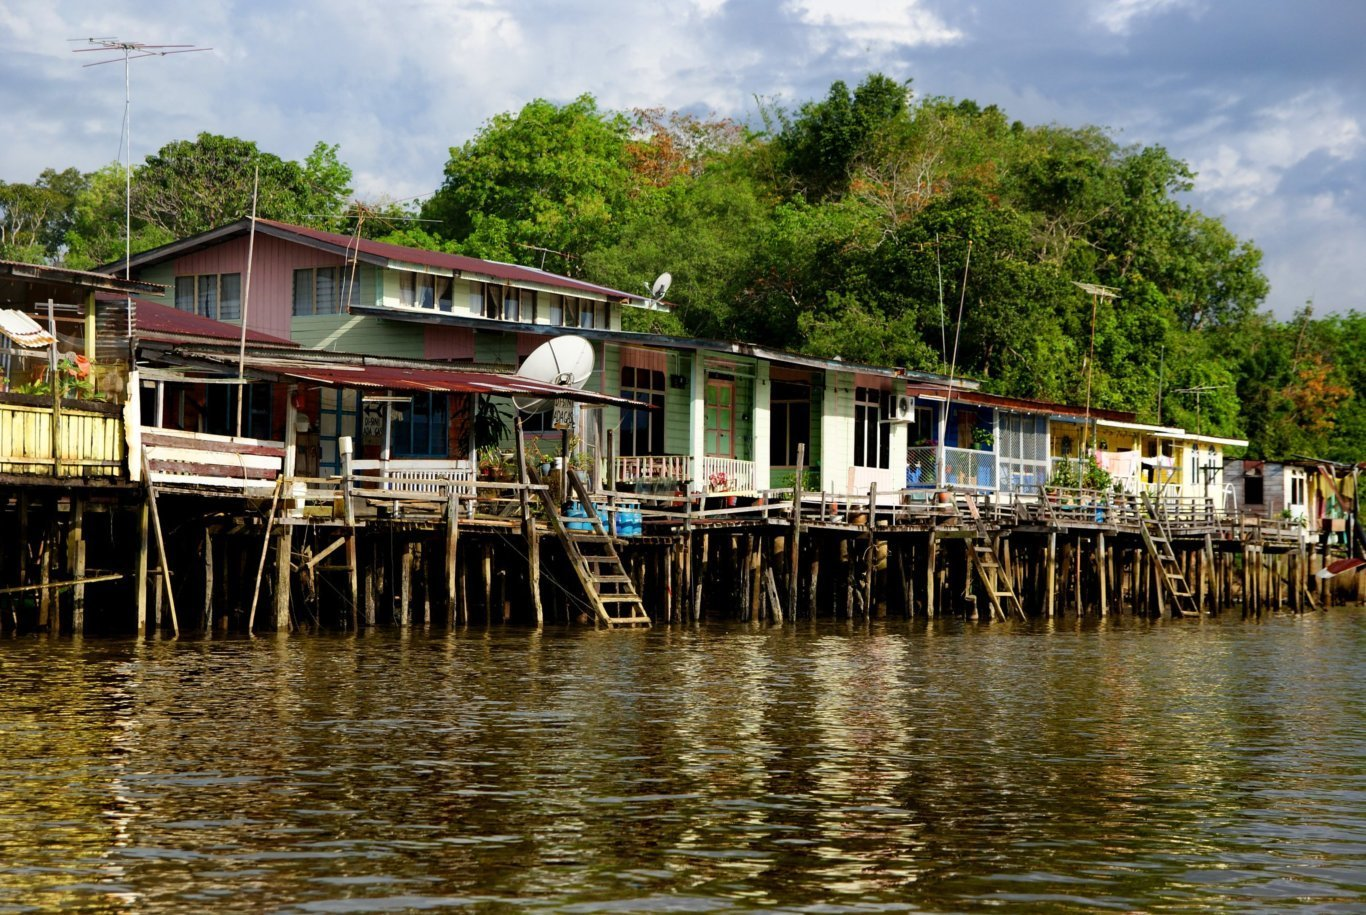 11-Day Nature's Best in the Rainforests of Borneo - Malaysia and Brunei Itinerary